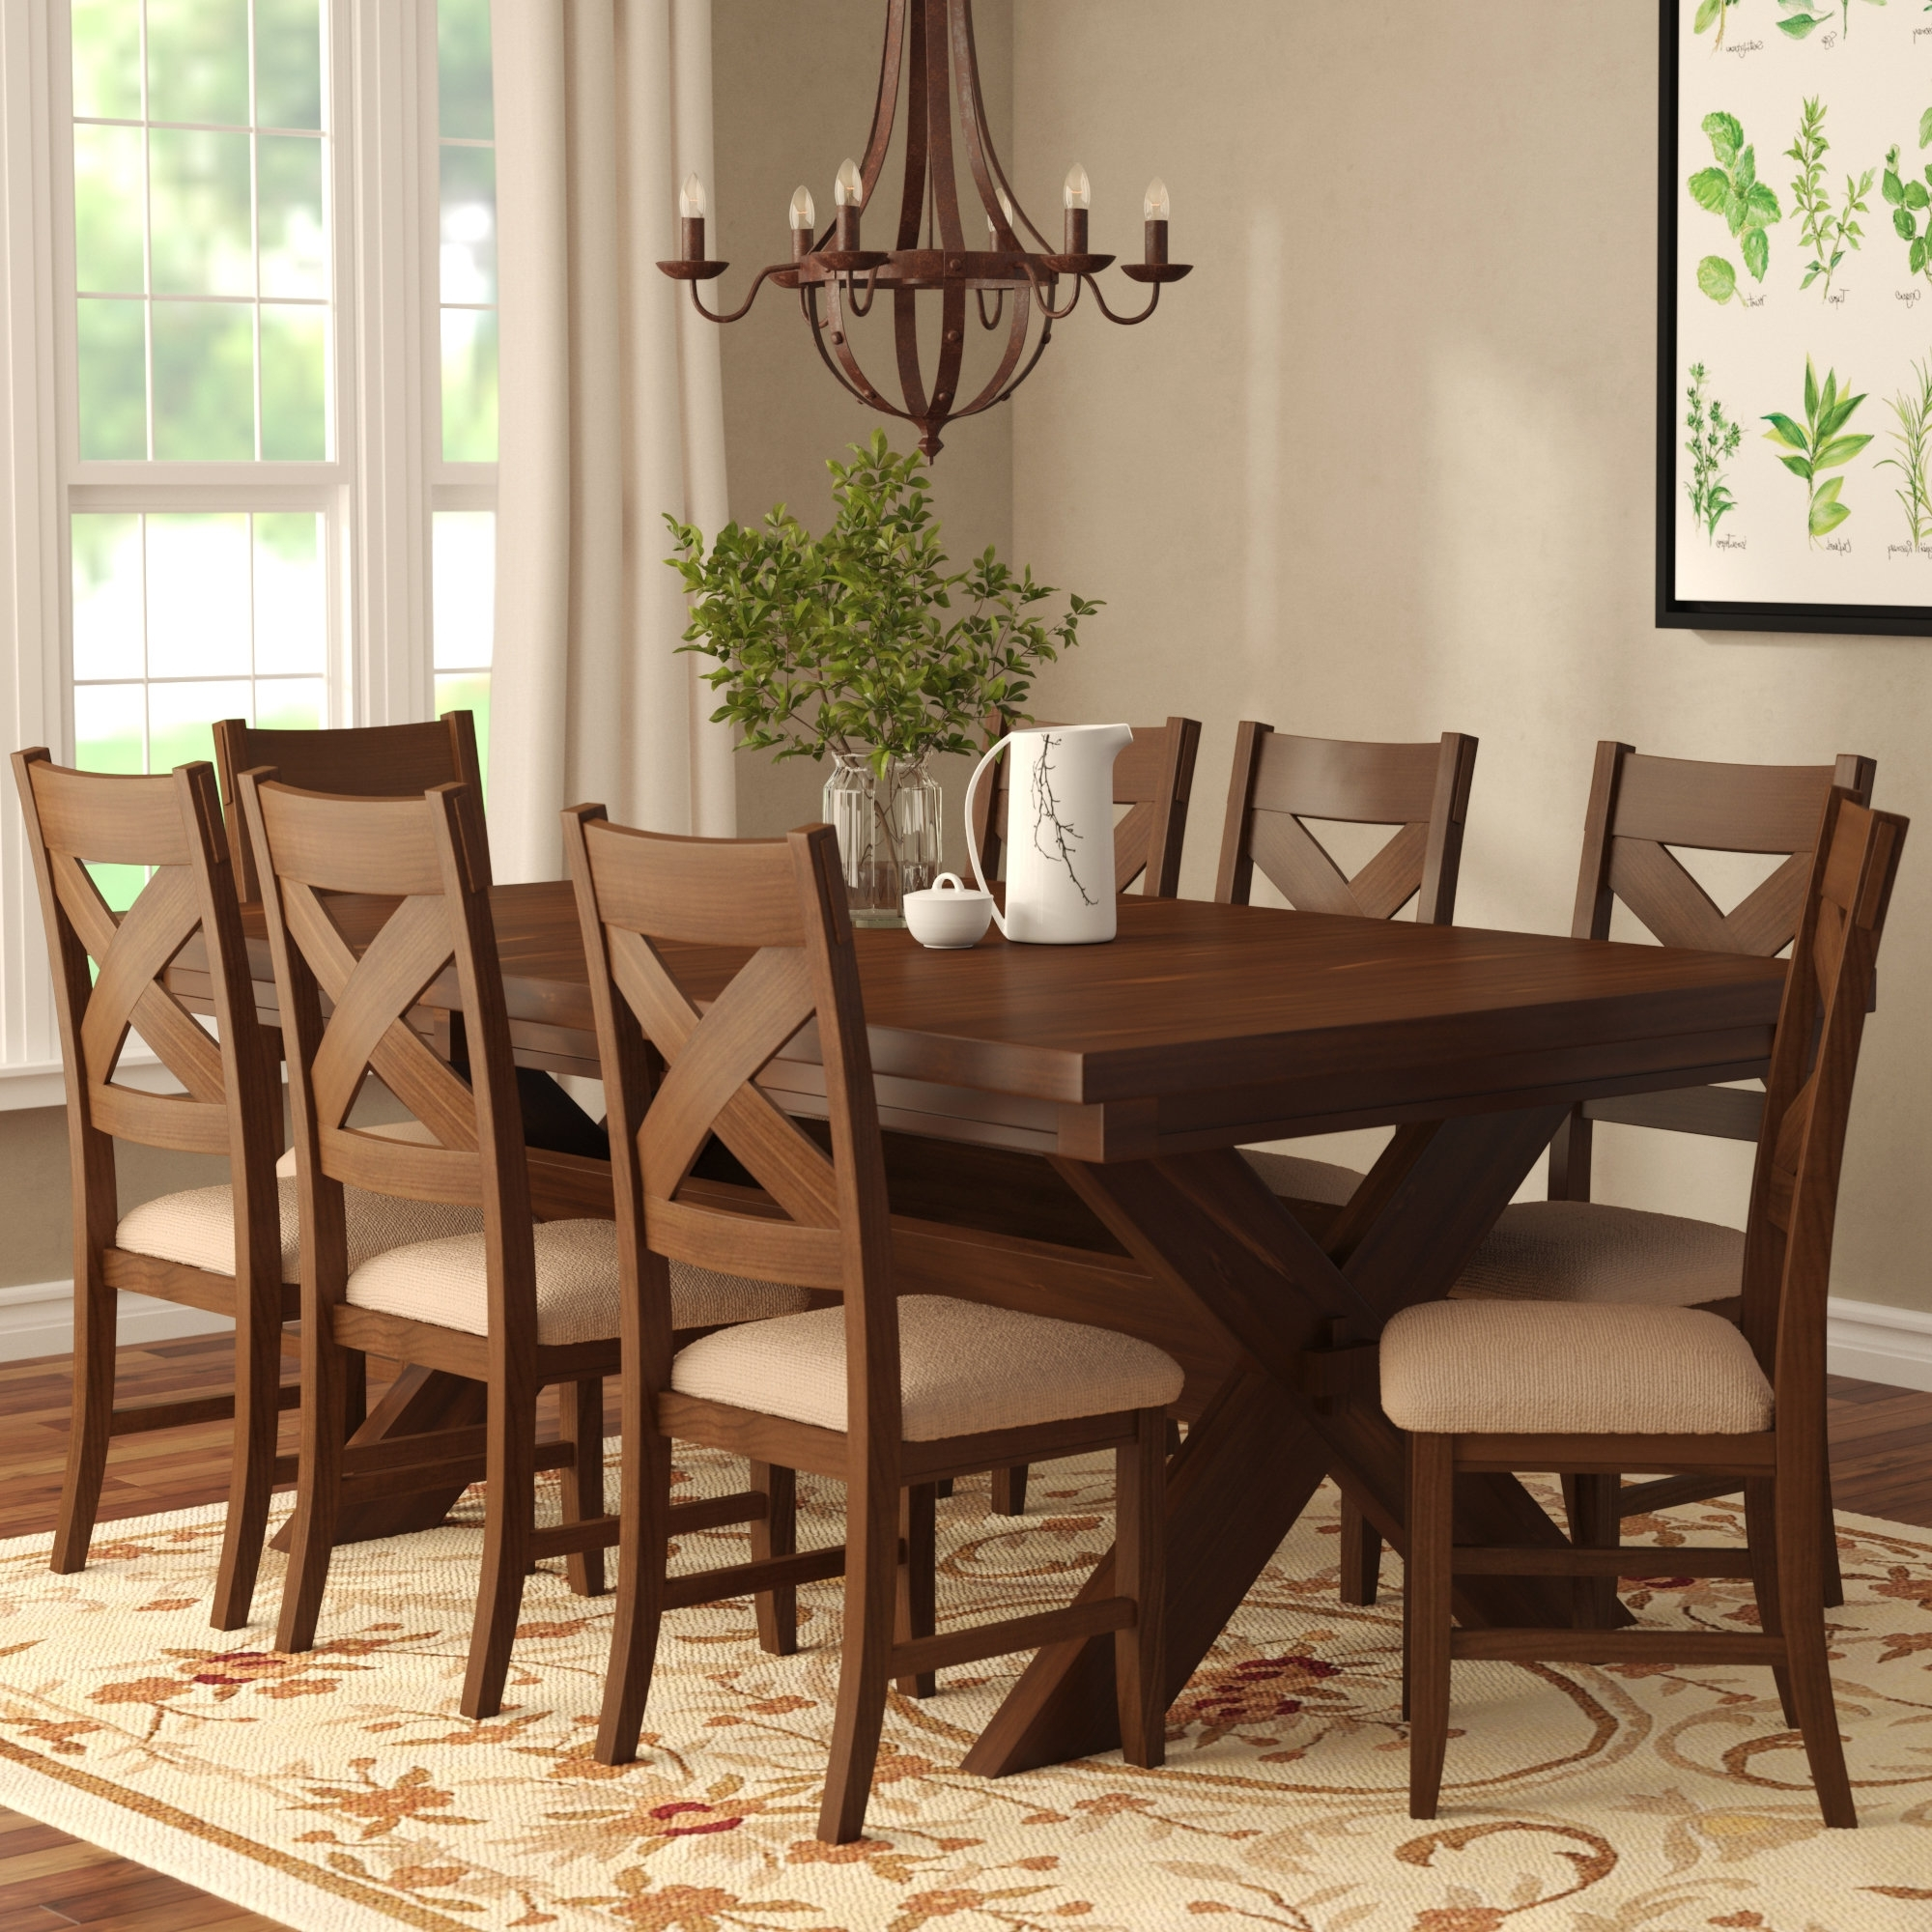 Caden 6 Piece Dining Sets With Upholstered Side Chair Regarding Famous Laurel Foundry Modern Farmhouse Isabell 9 Piece Dining Set & Reviews (View 17 of 25)